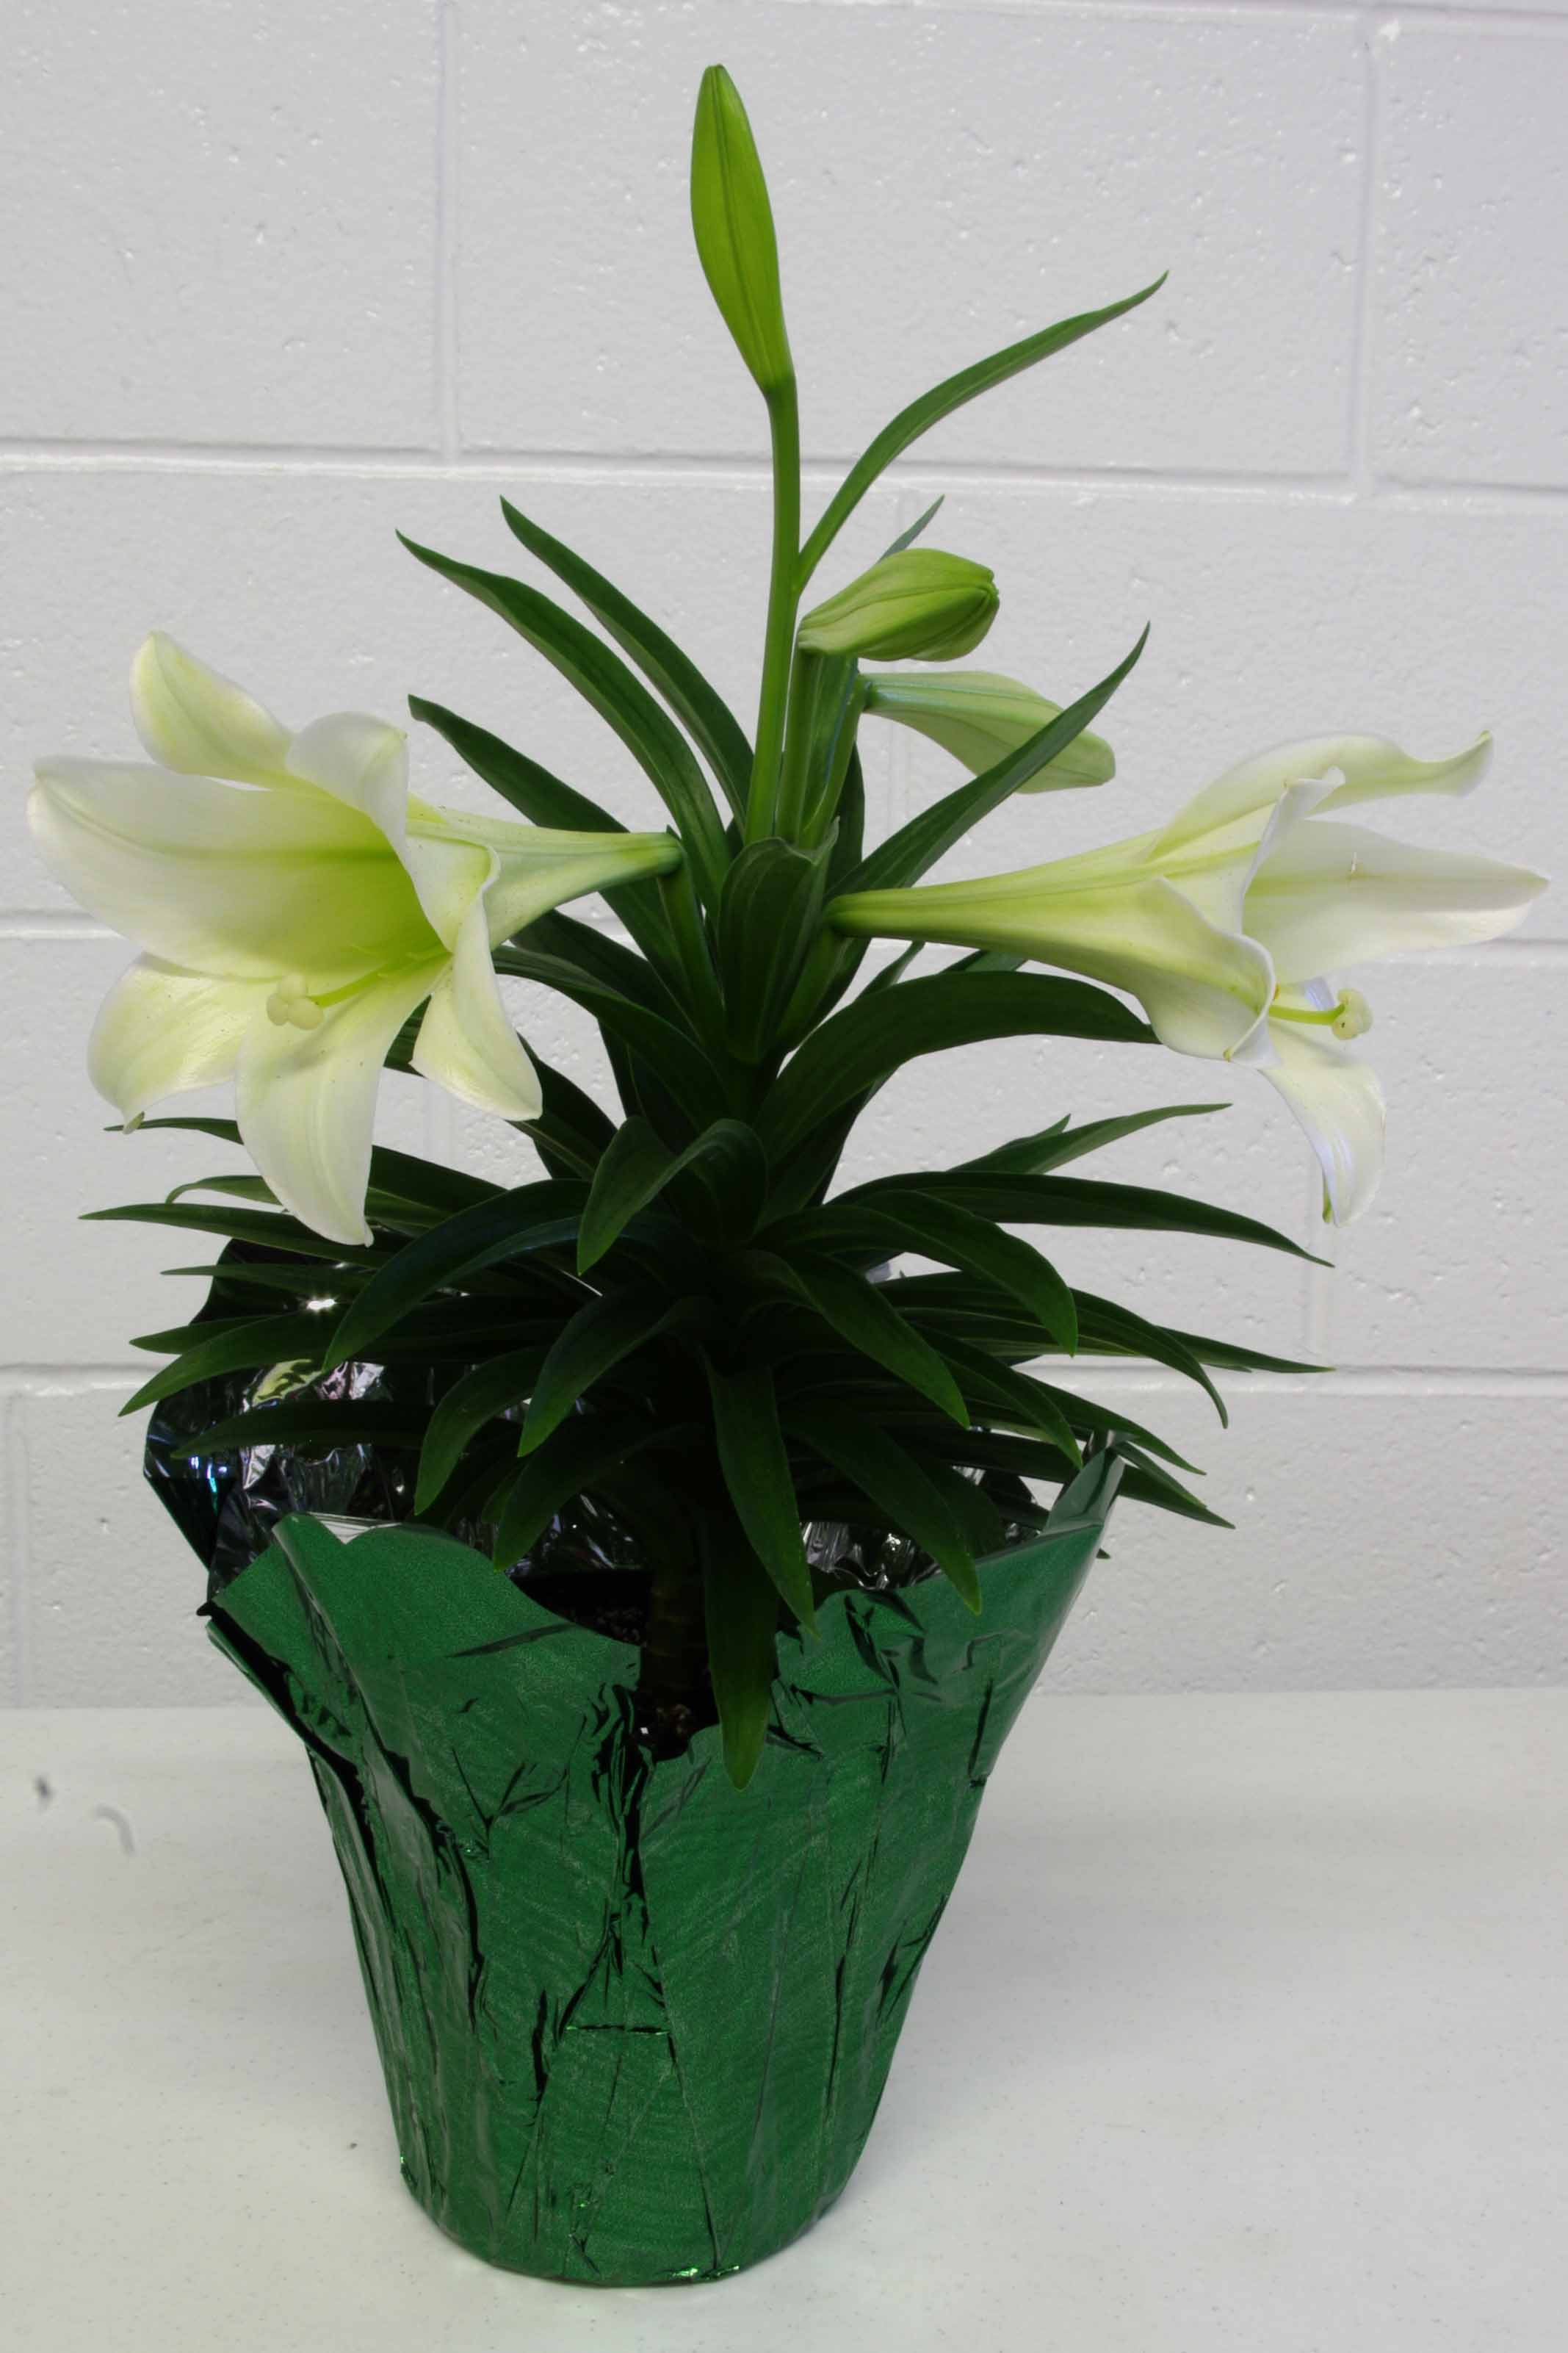 The traditional White Easter Lily